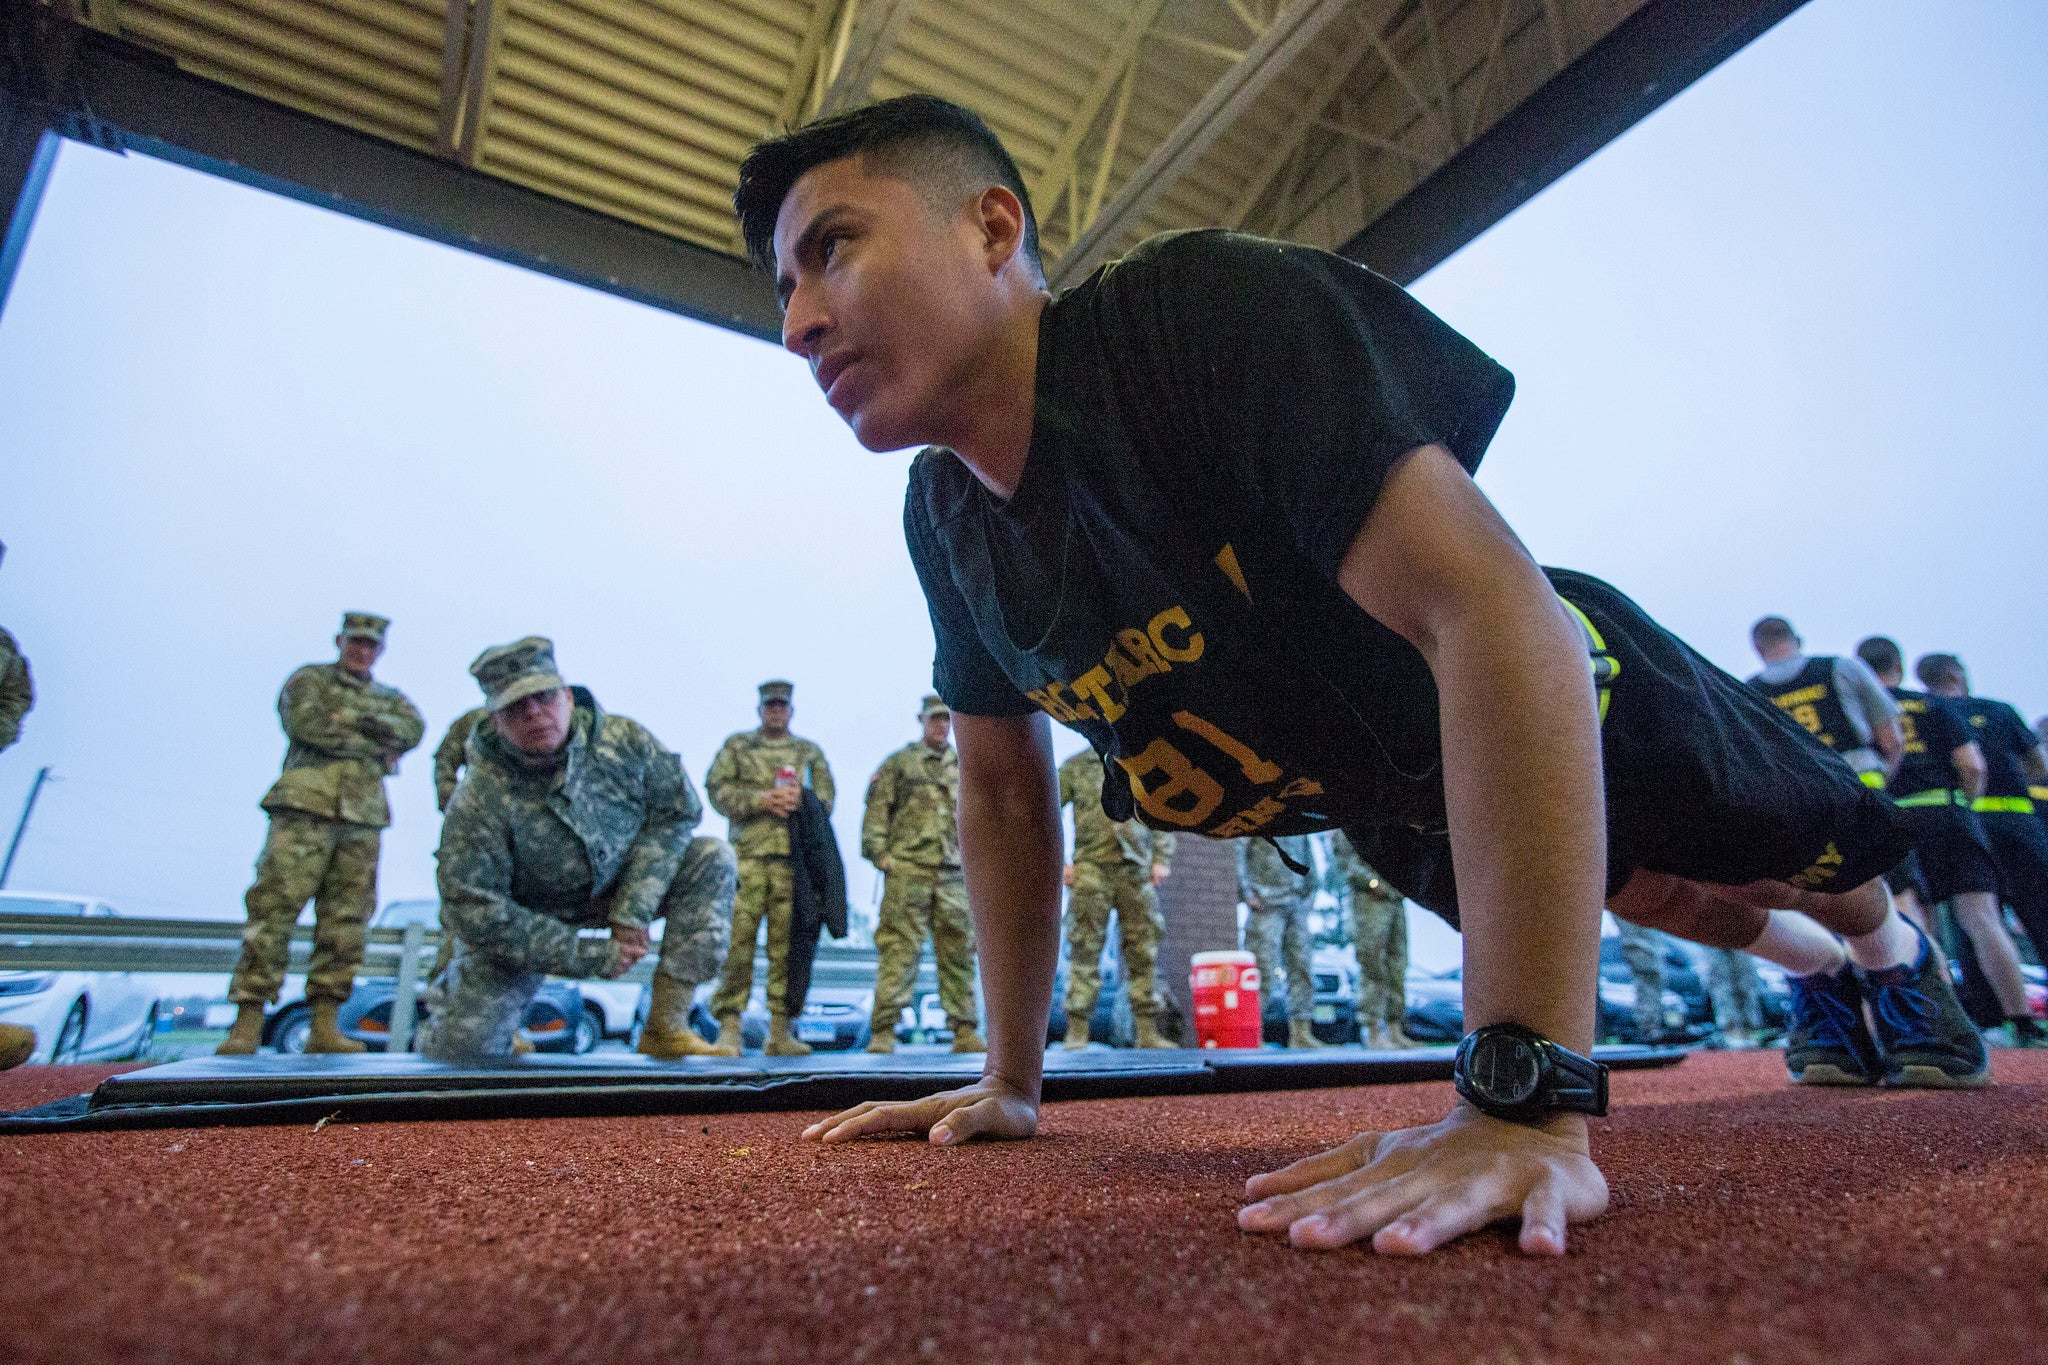 A US Army National Guard soldier does a push-up in front of a drill sergeant